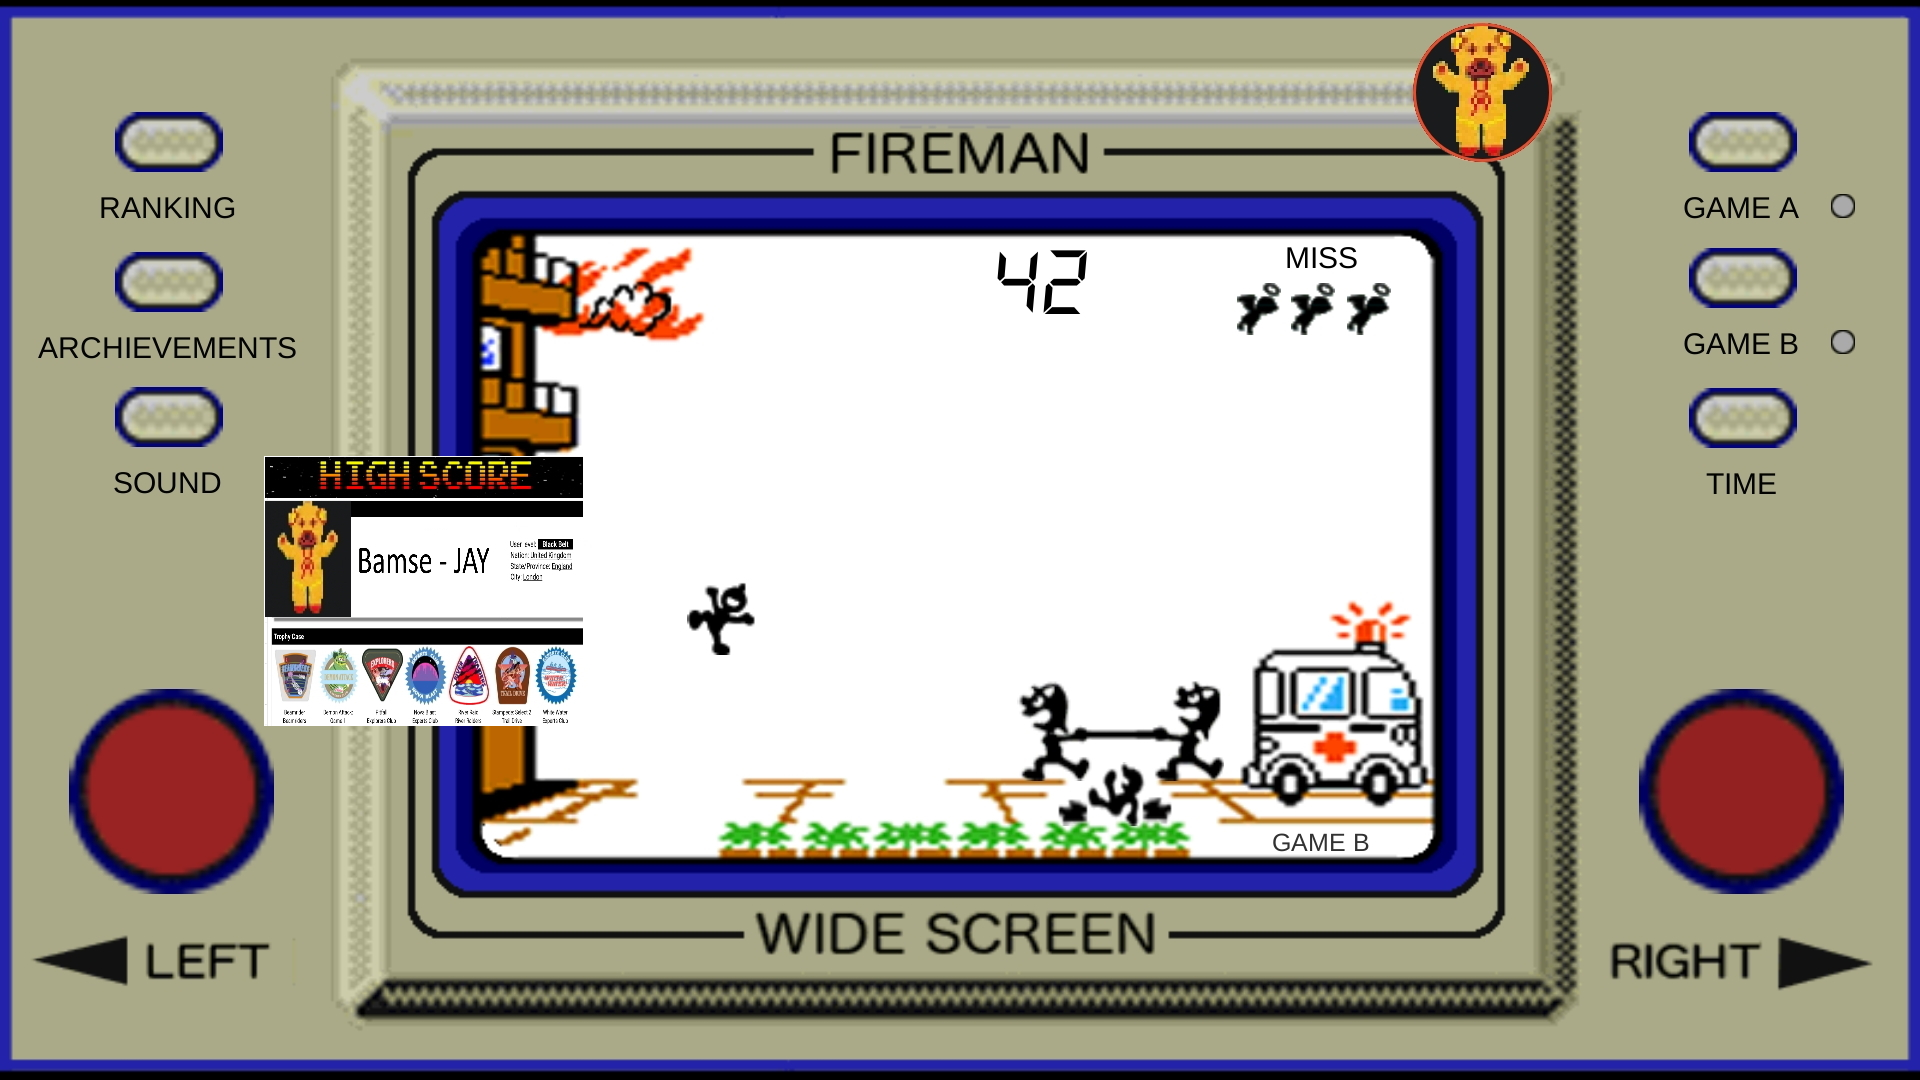 Bamse: Game & Watch: Fire [aka Fireman Fireman] [Game B] (Dedicated Handheld Emulated) 42 points on 2019-11-17 18:46:52